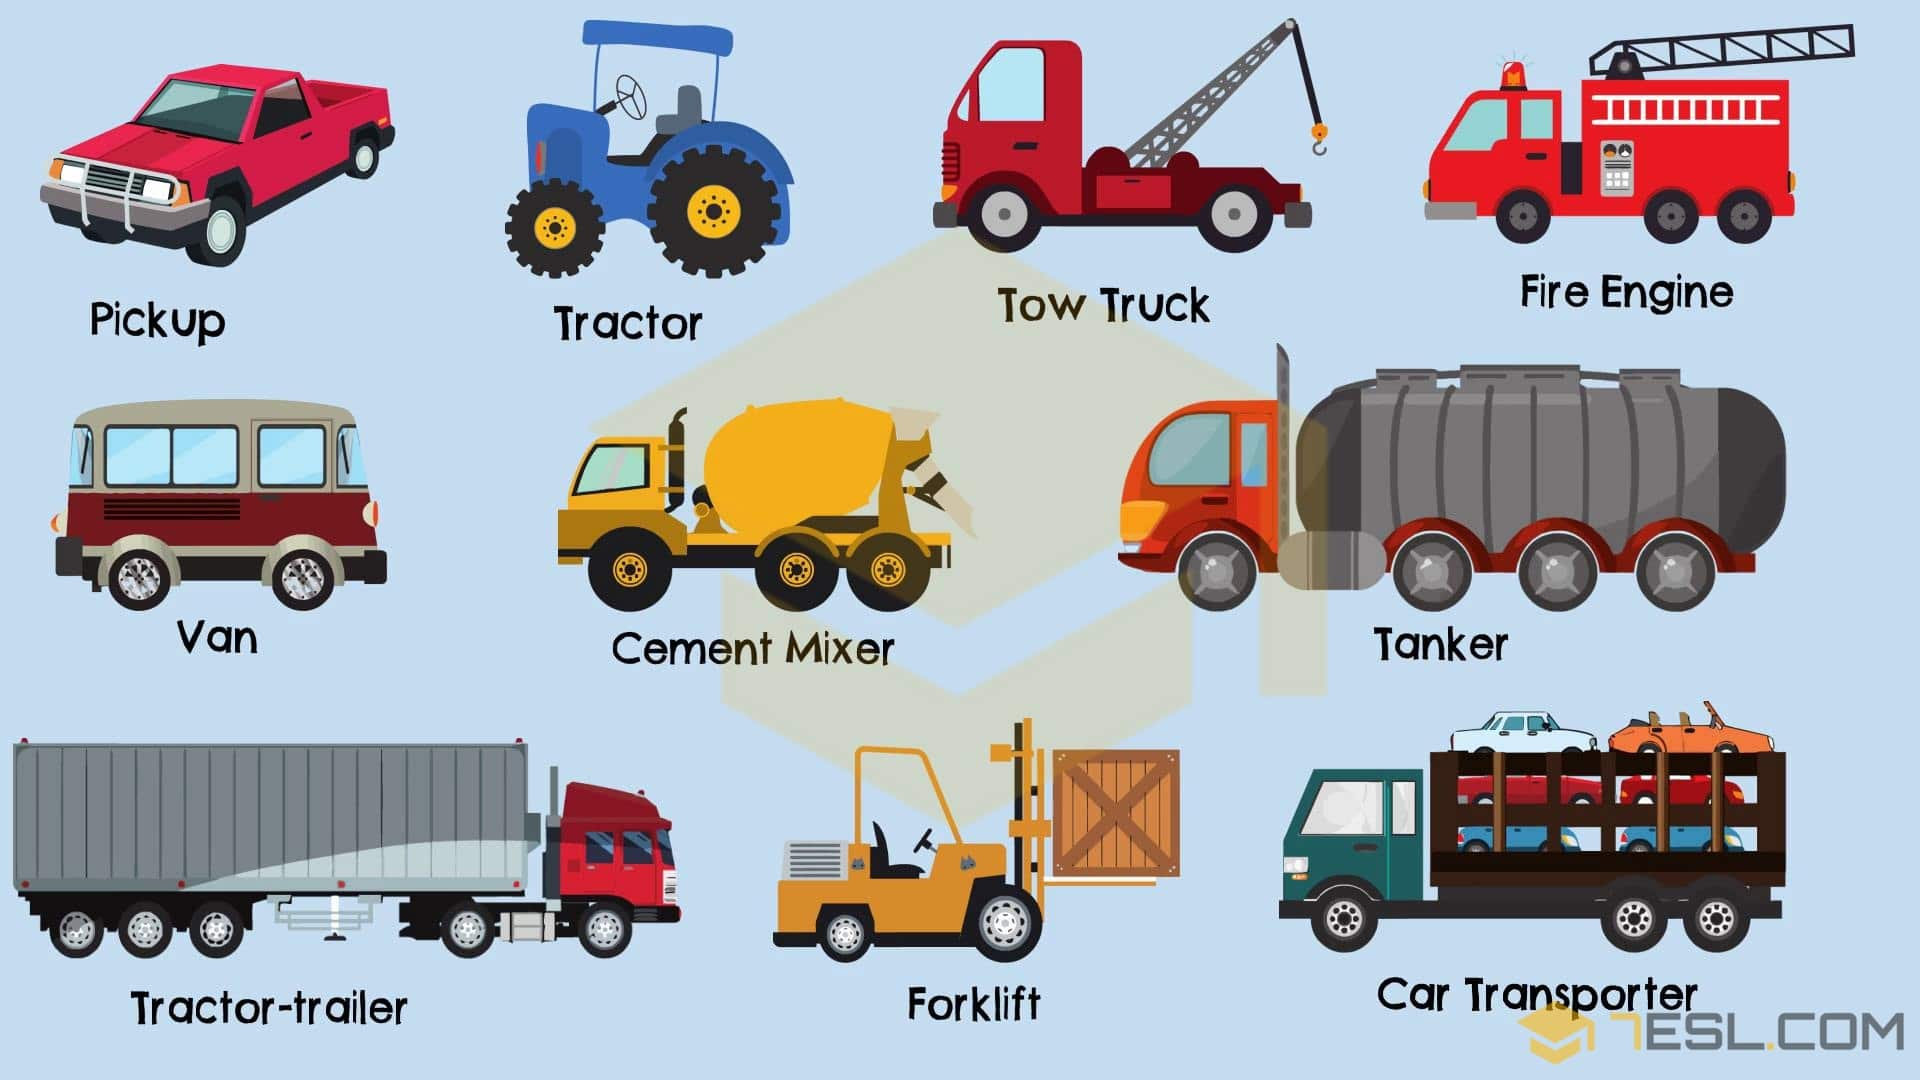 Types of Trucks in English | Truck Names with Pictures